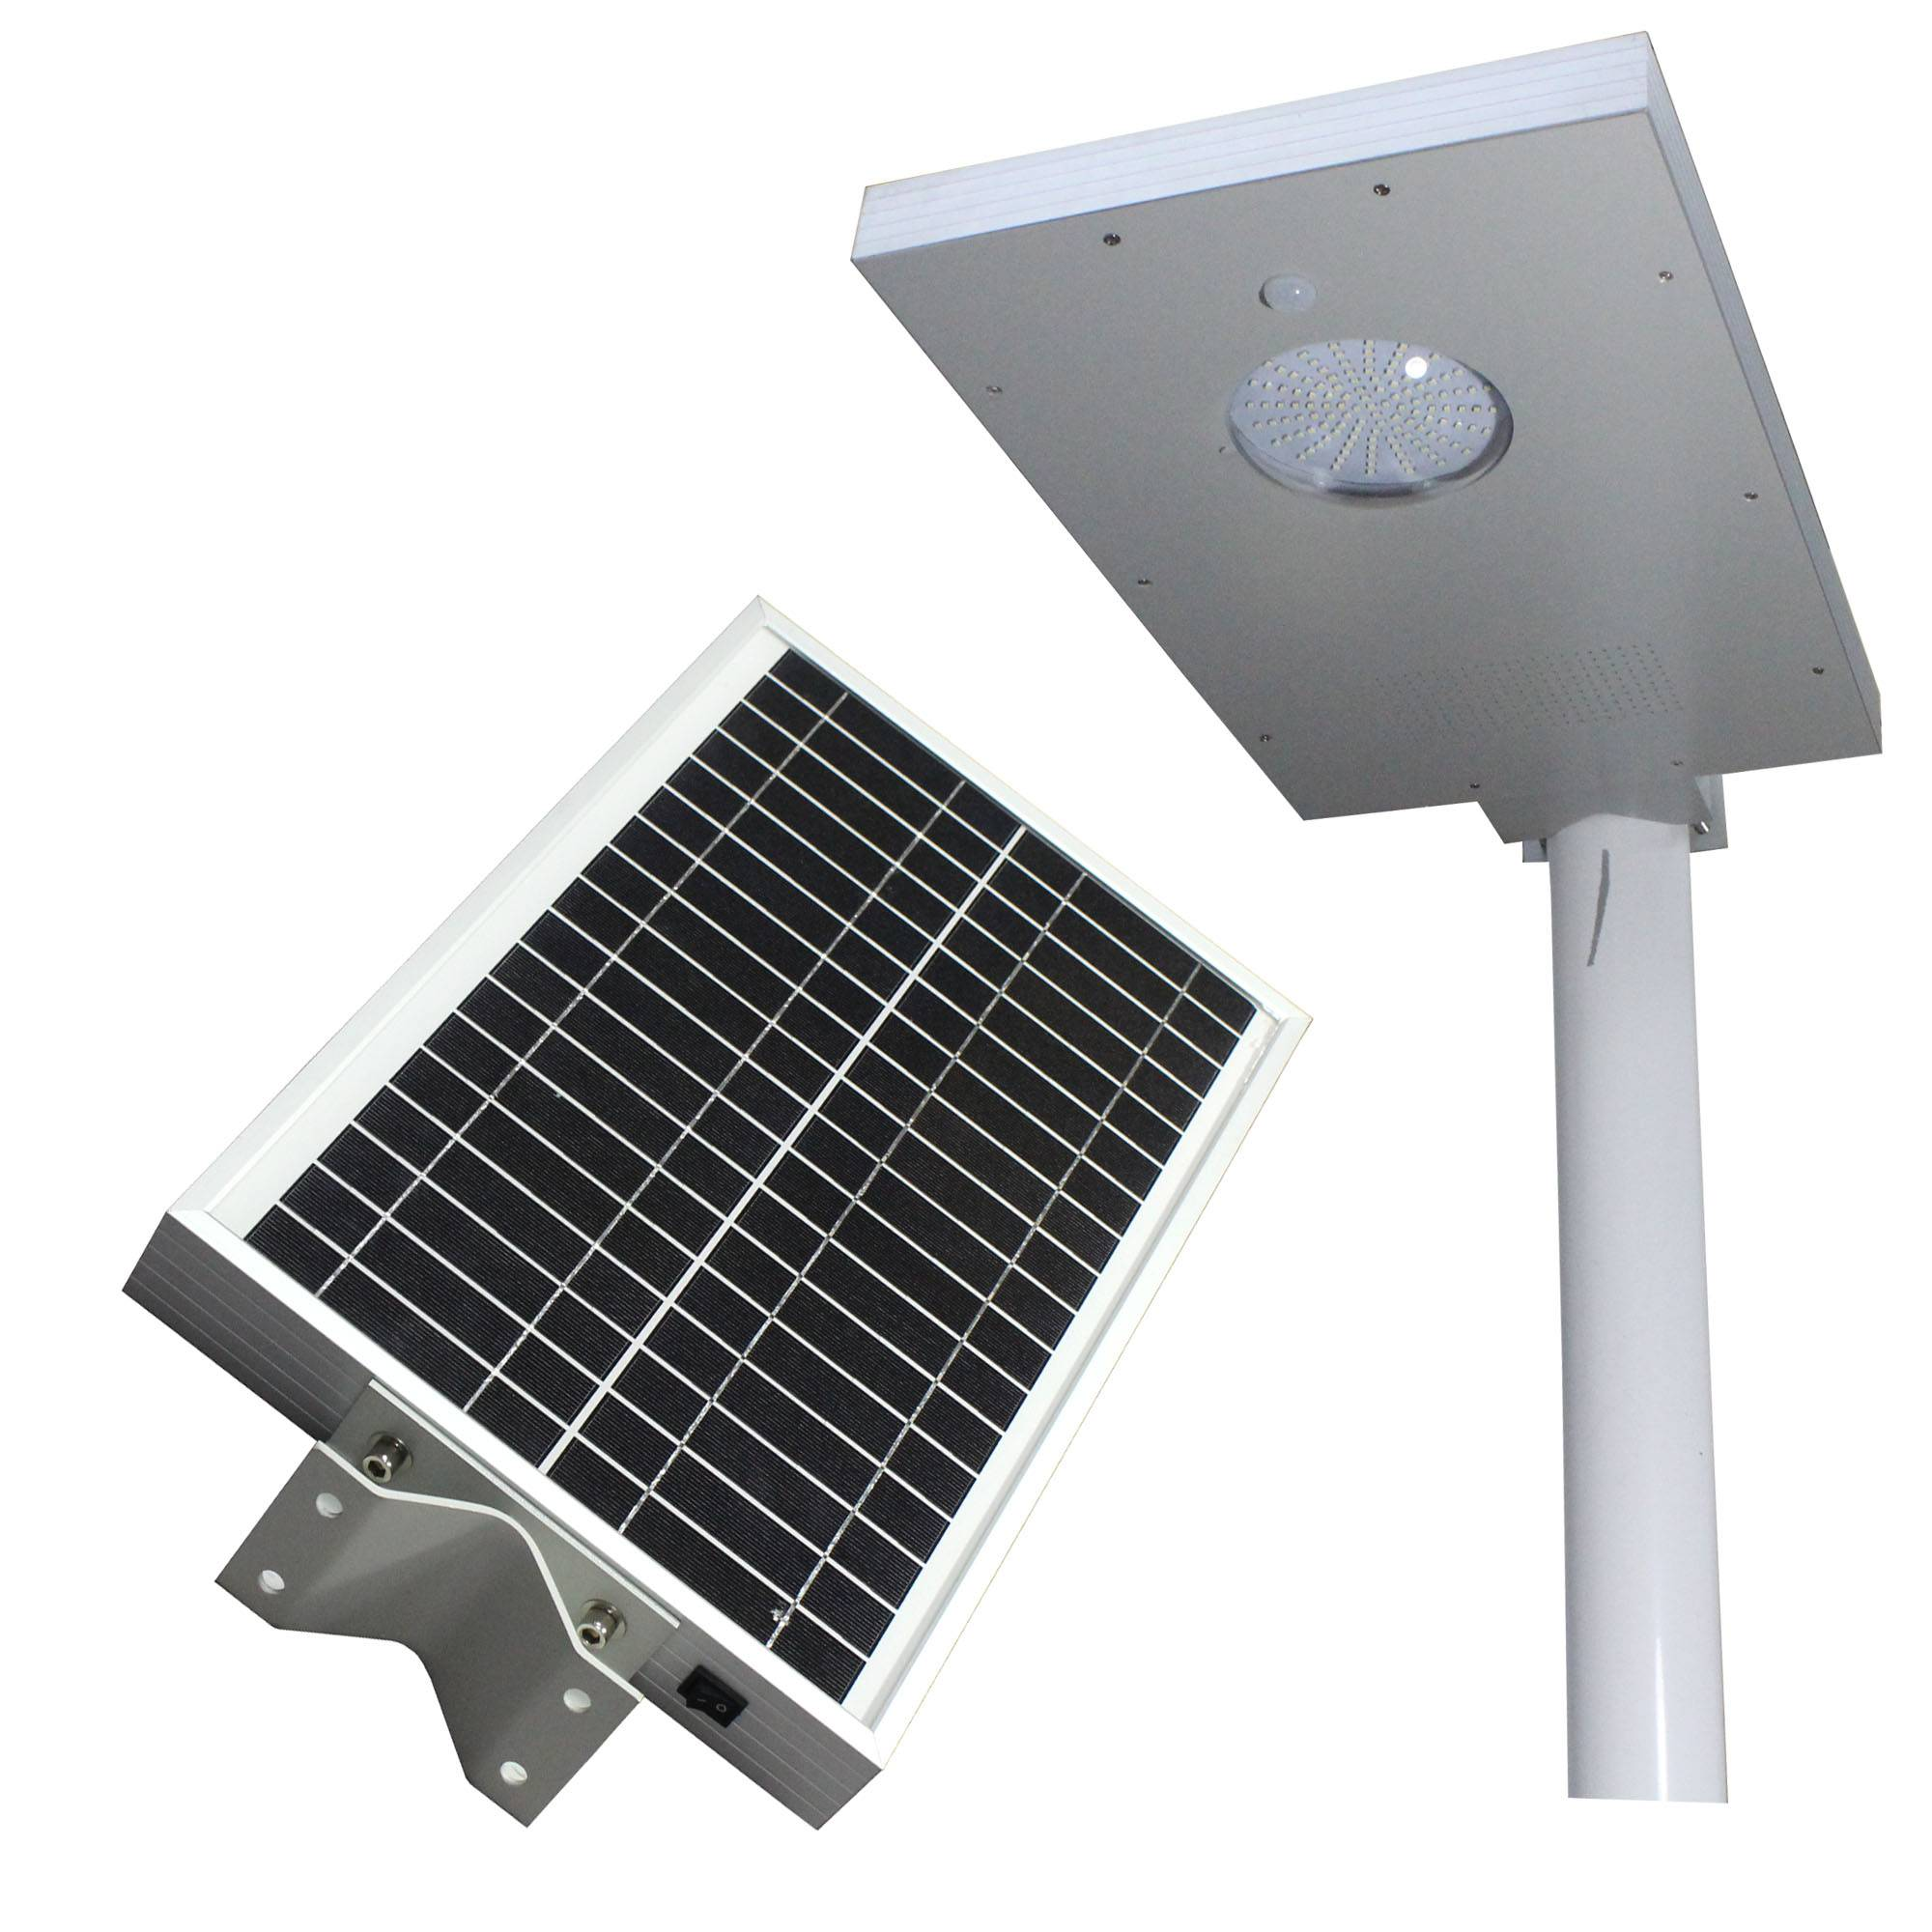 Integrated solar light with 12W LED lamp